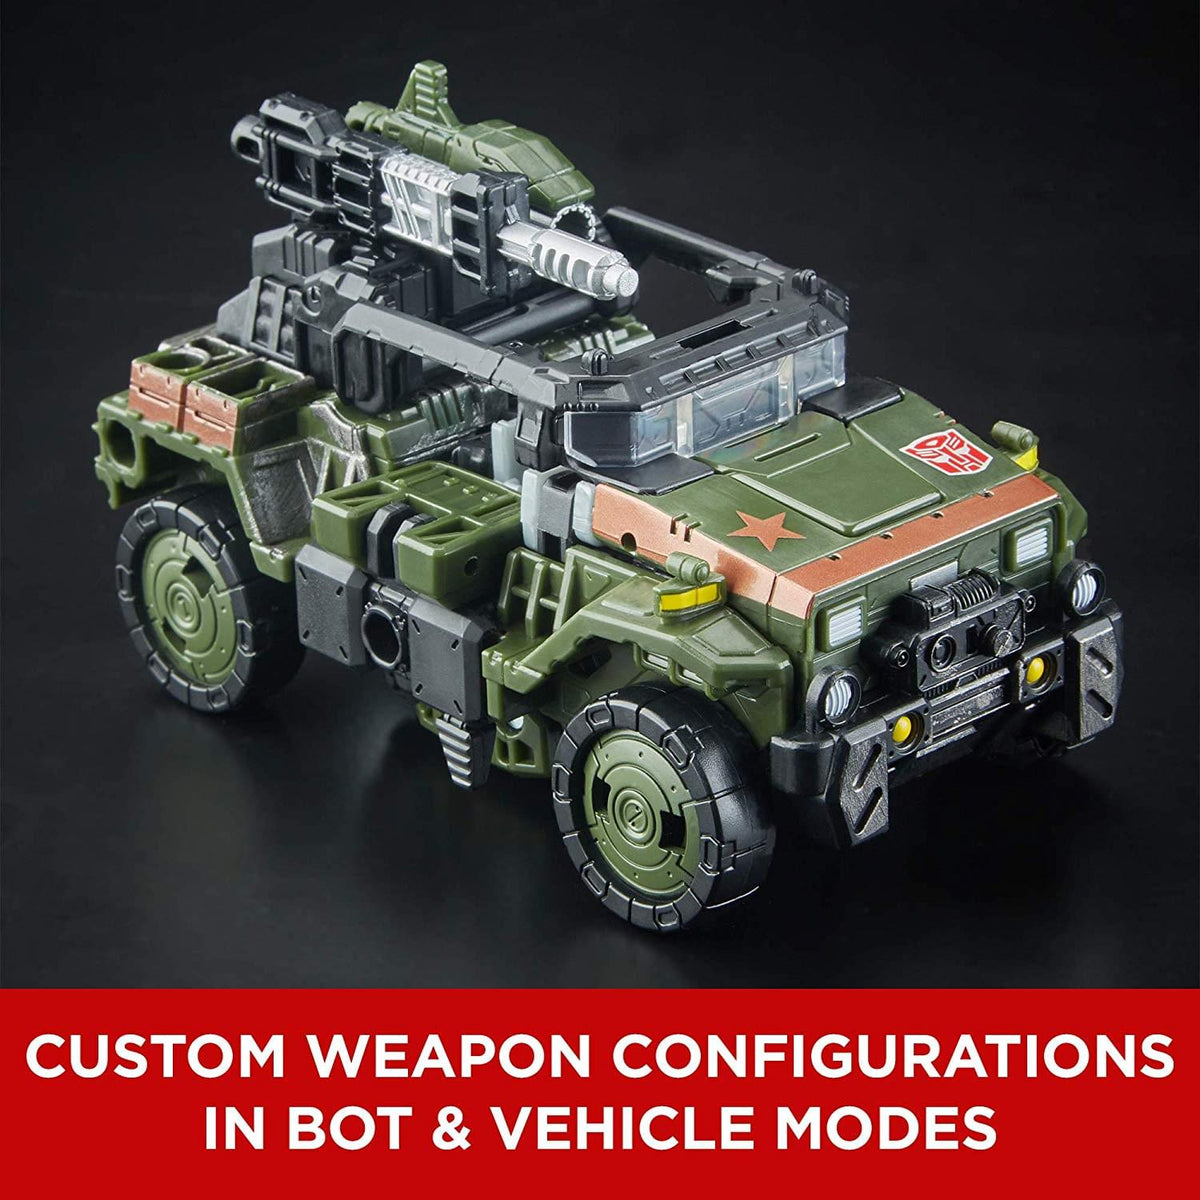 Transformers Generations Siege Deluxe Action Figure | Hound